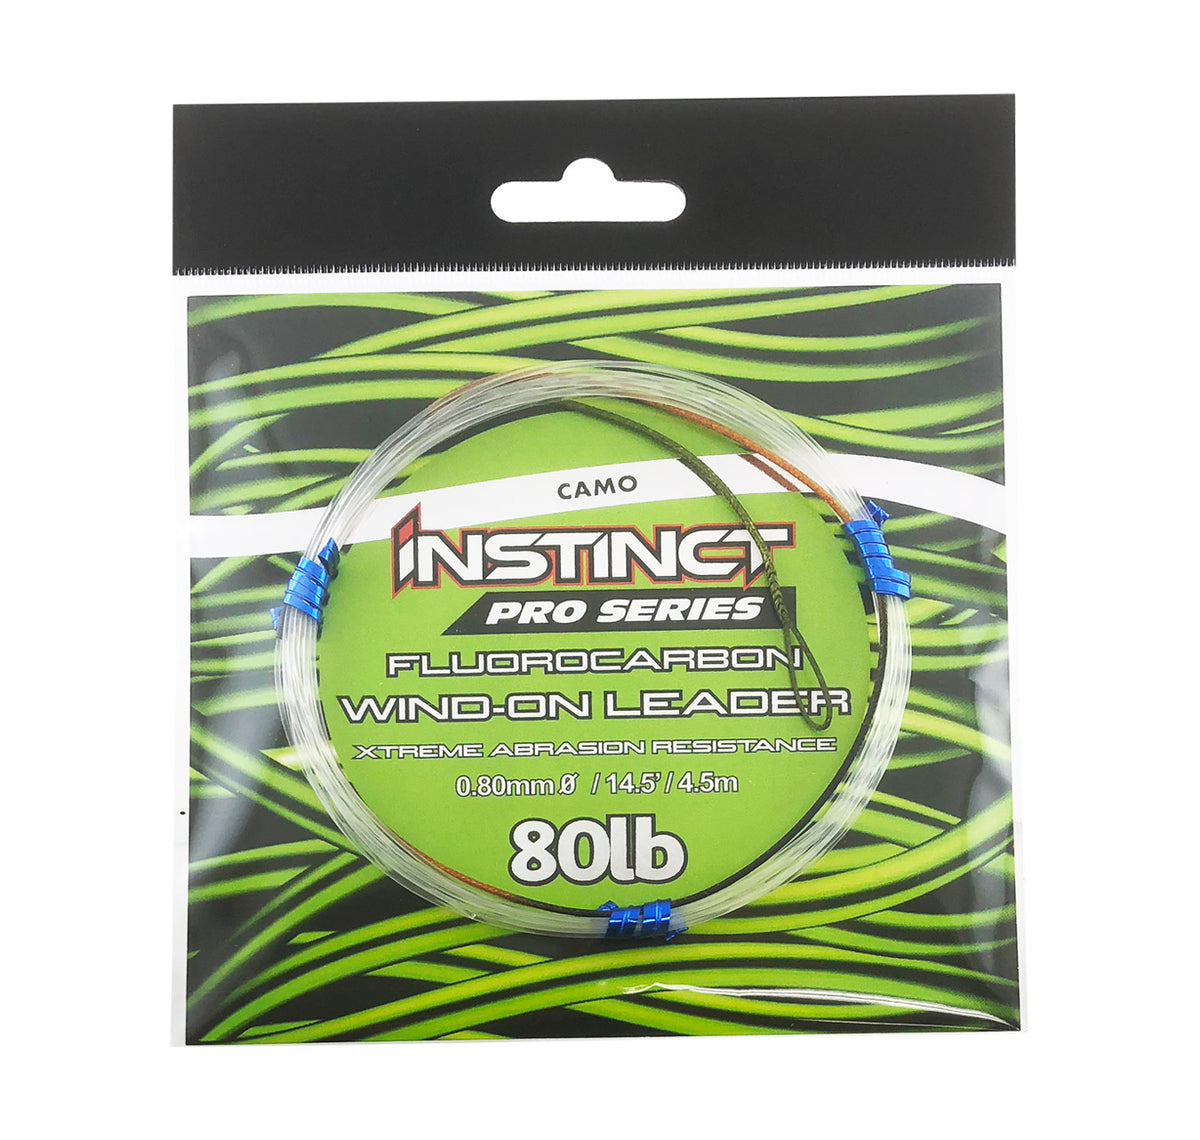 Instinct Pro Series Fluorocarbon Wind-On Leader